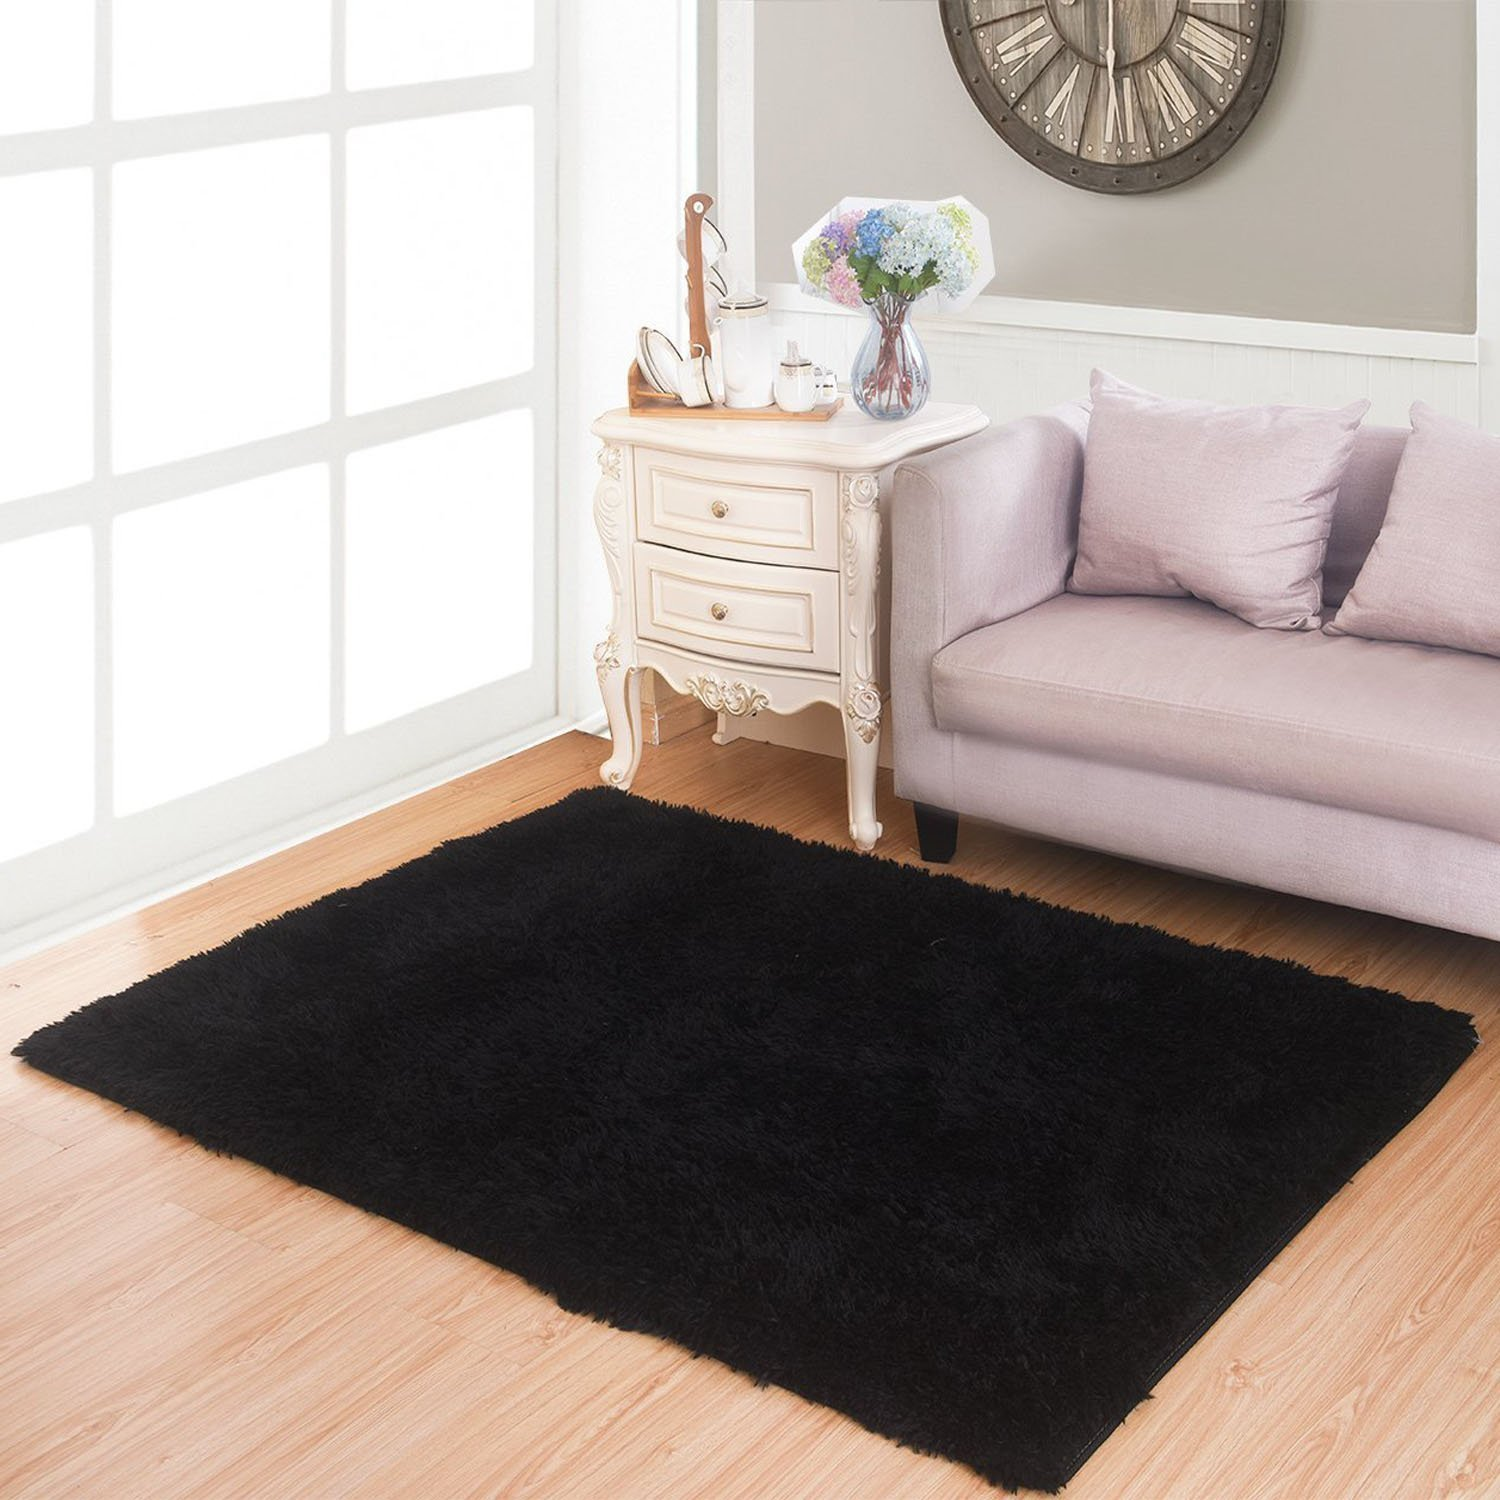 mbigm super soft modern shag area rugs purple living room carpet bedroom rug washable rugs solid - Bedroom Rug